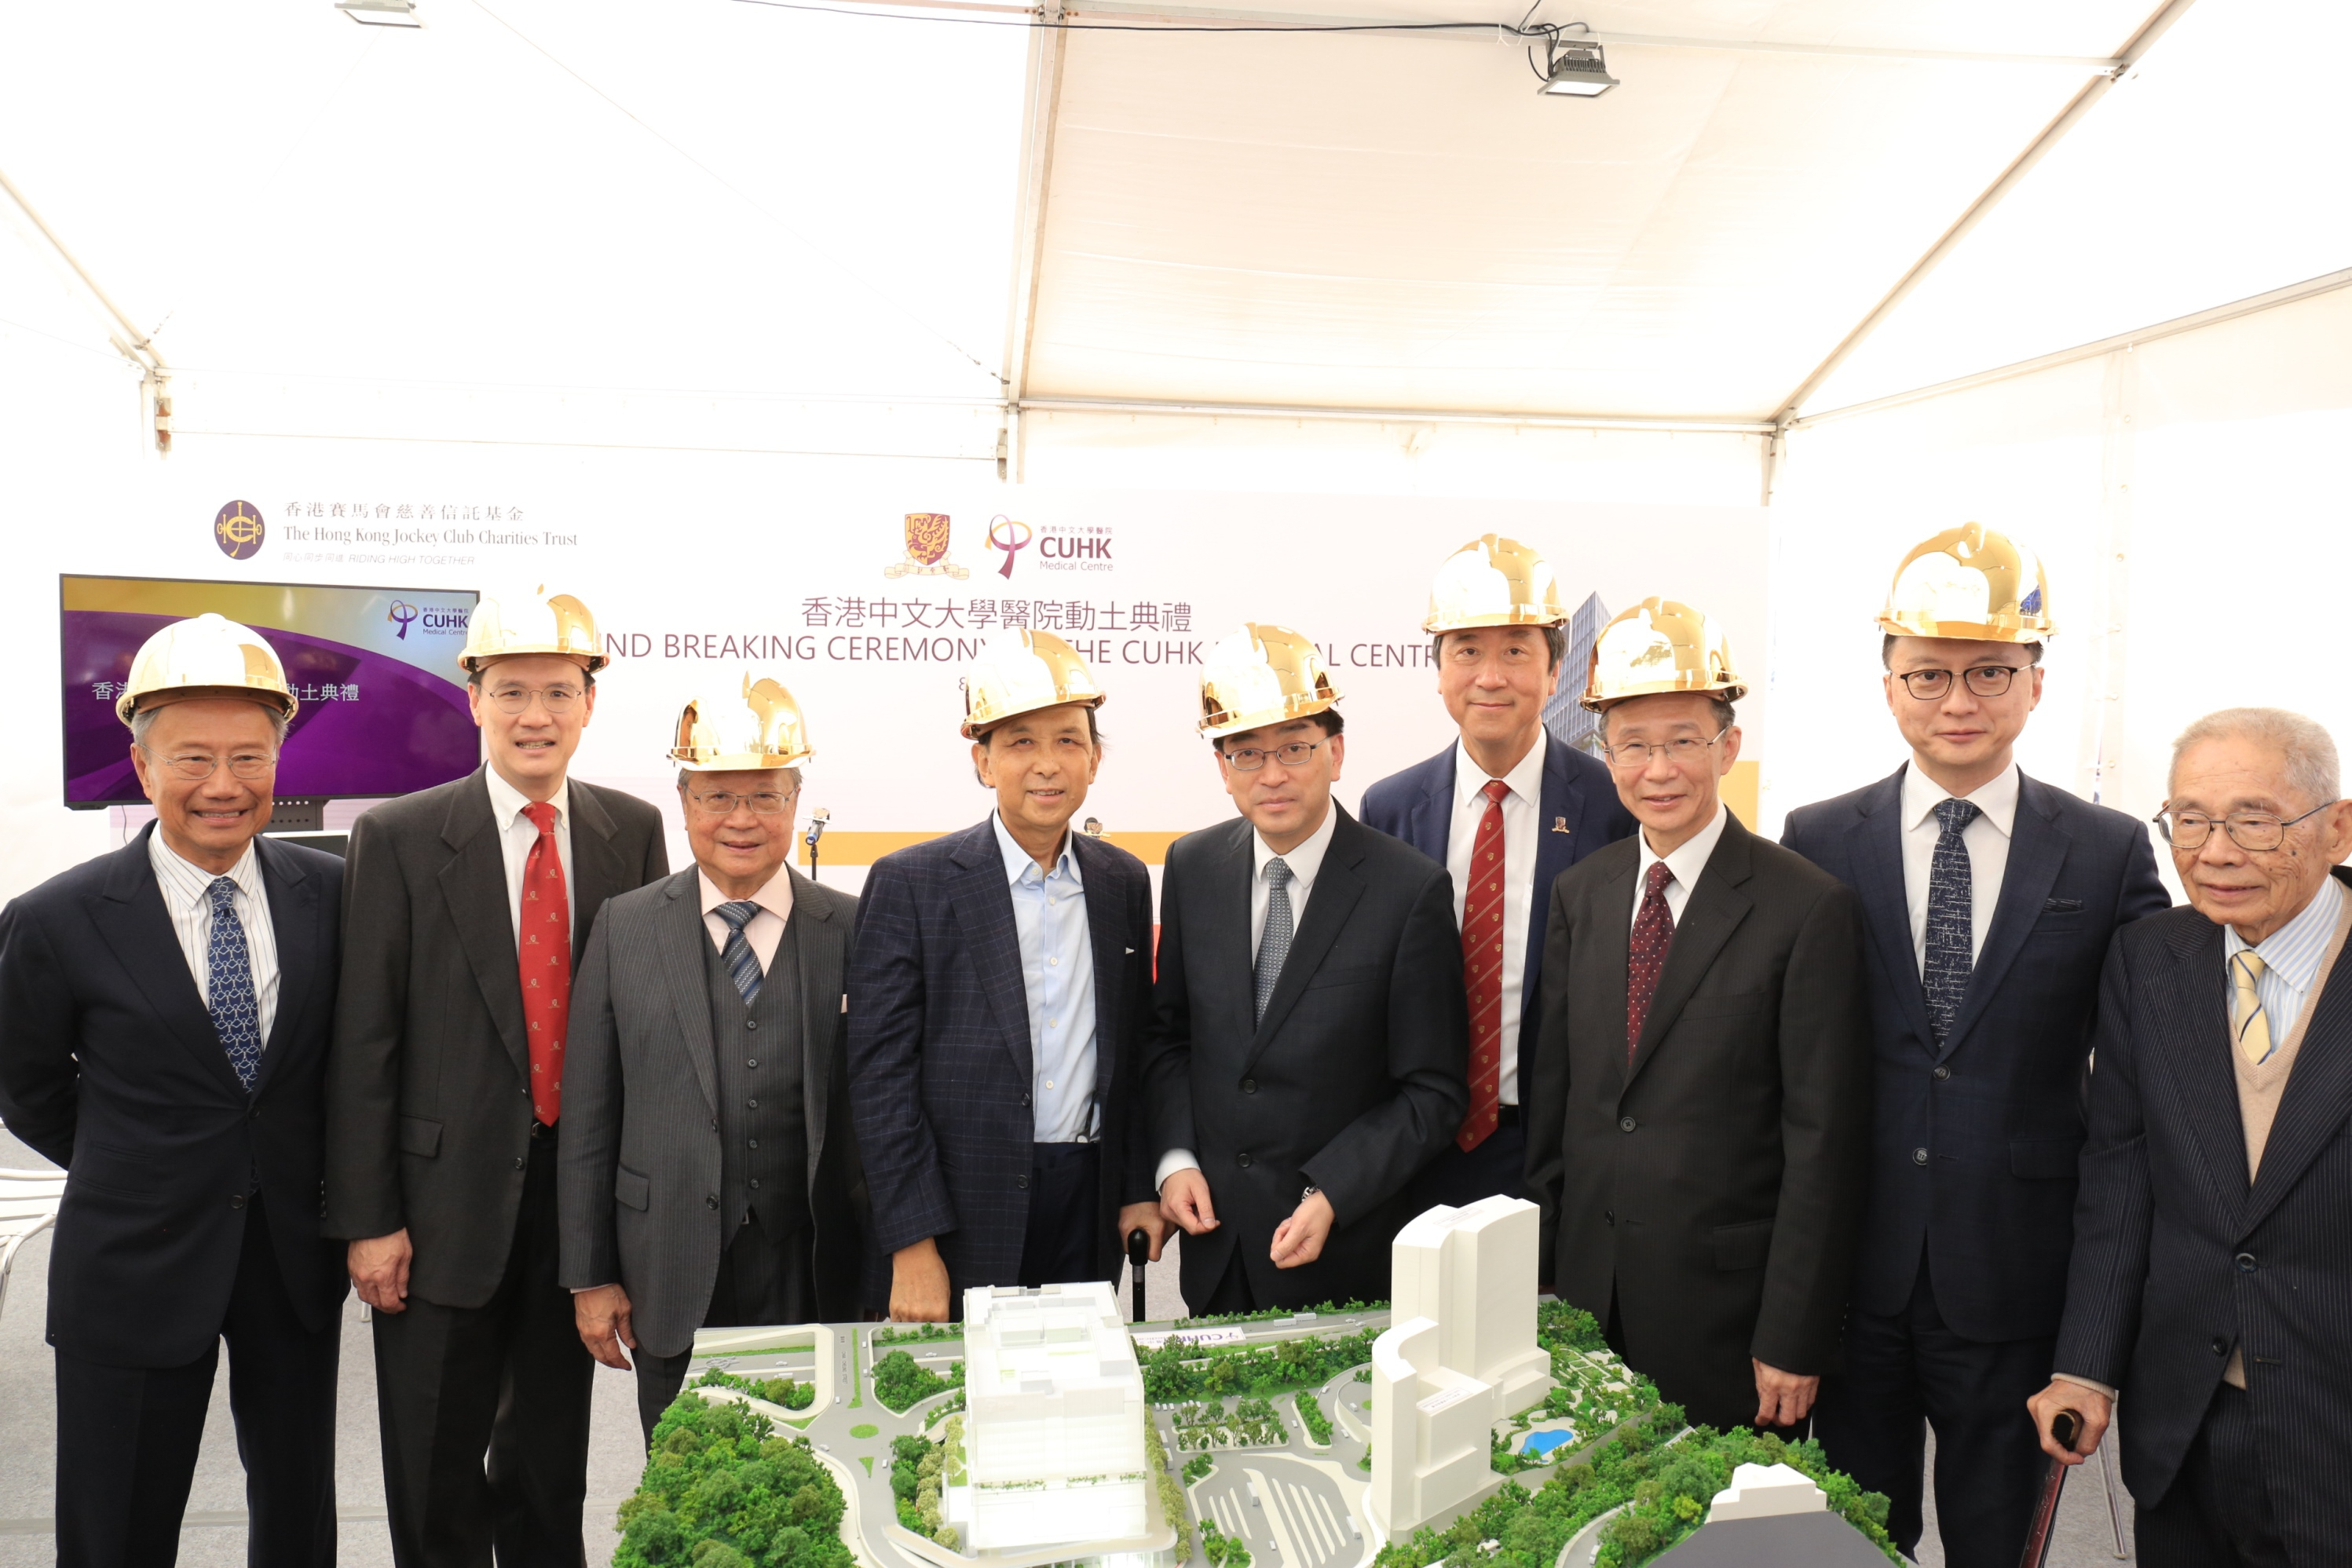 Guests stand near a scale model of The CUHK Medical Centre.